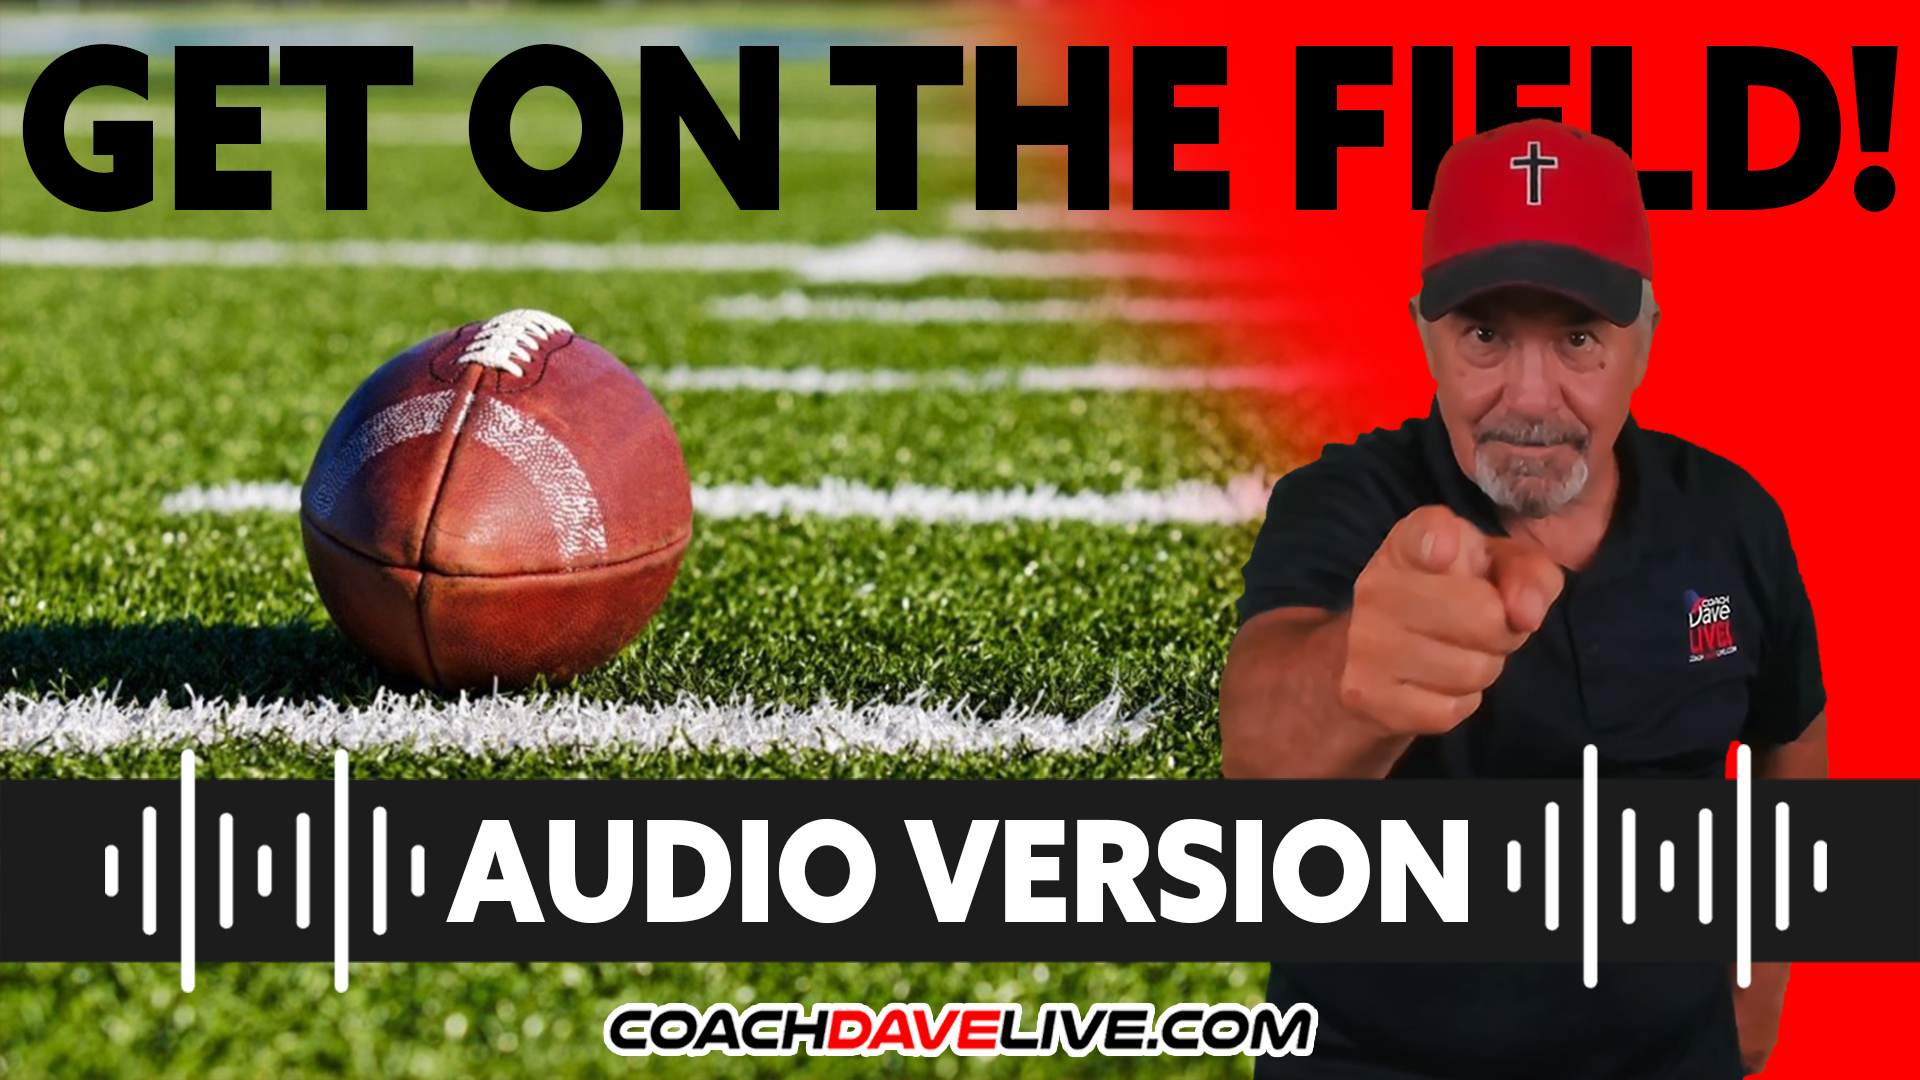 Coach Dave LIVE | 10-6-2021 | GET ON THE FIELD! - AUDIO ONLY